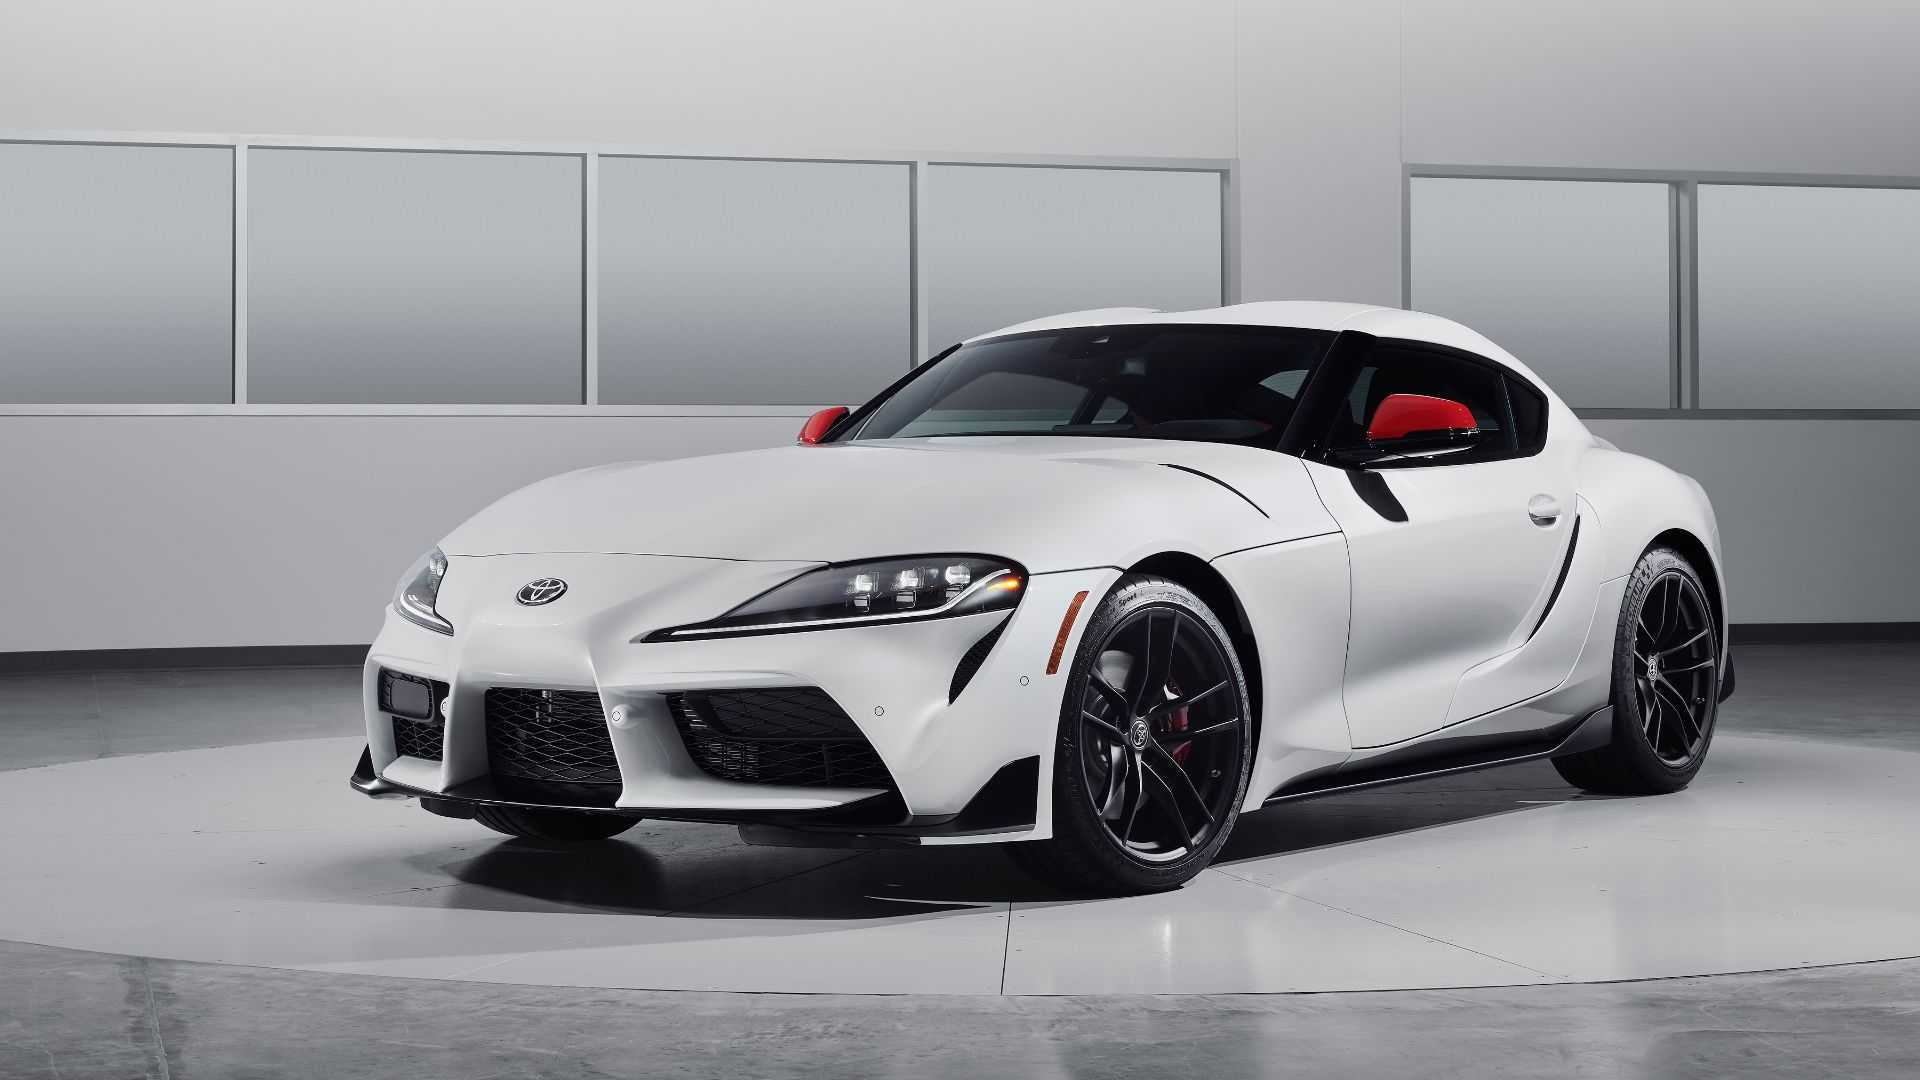 98 Great 2020 Toyota Supra Price Release Date for 2020 Toyota Supra Price